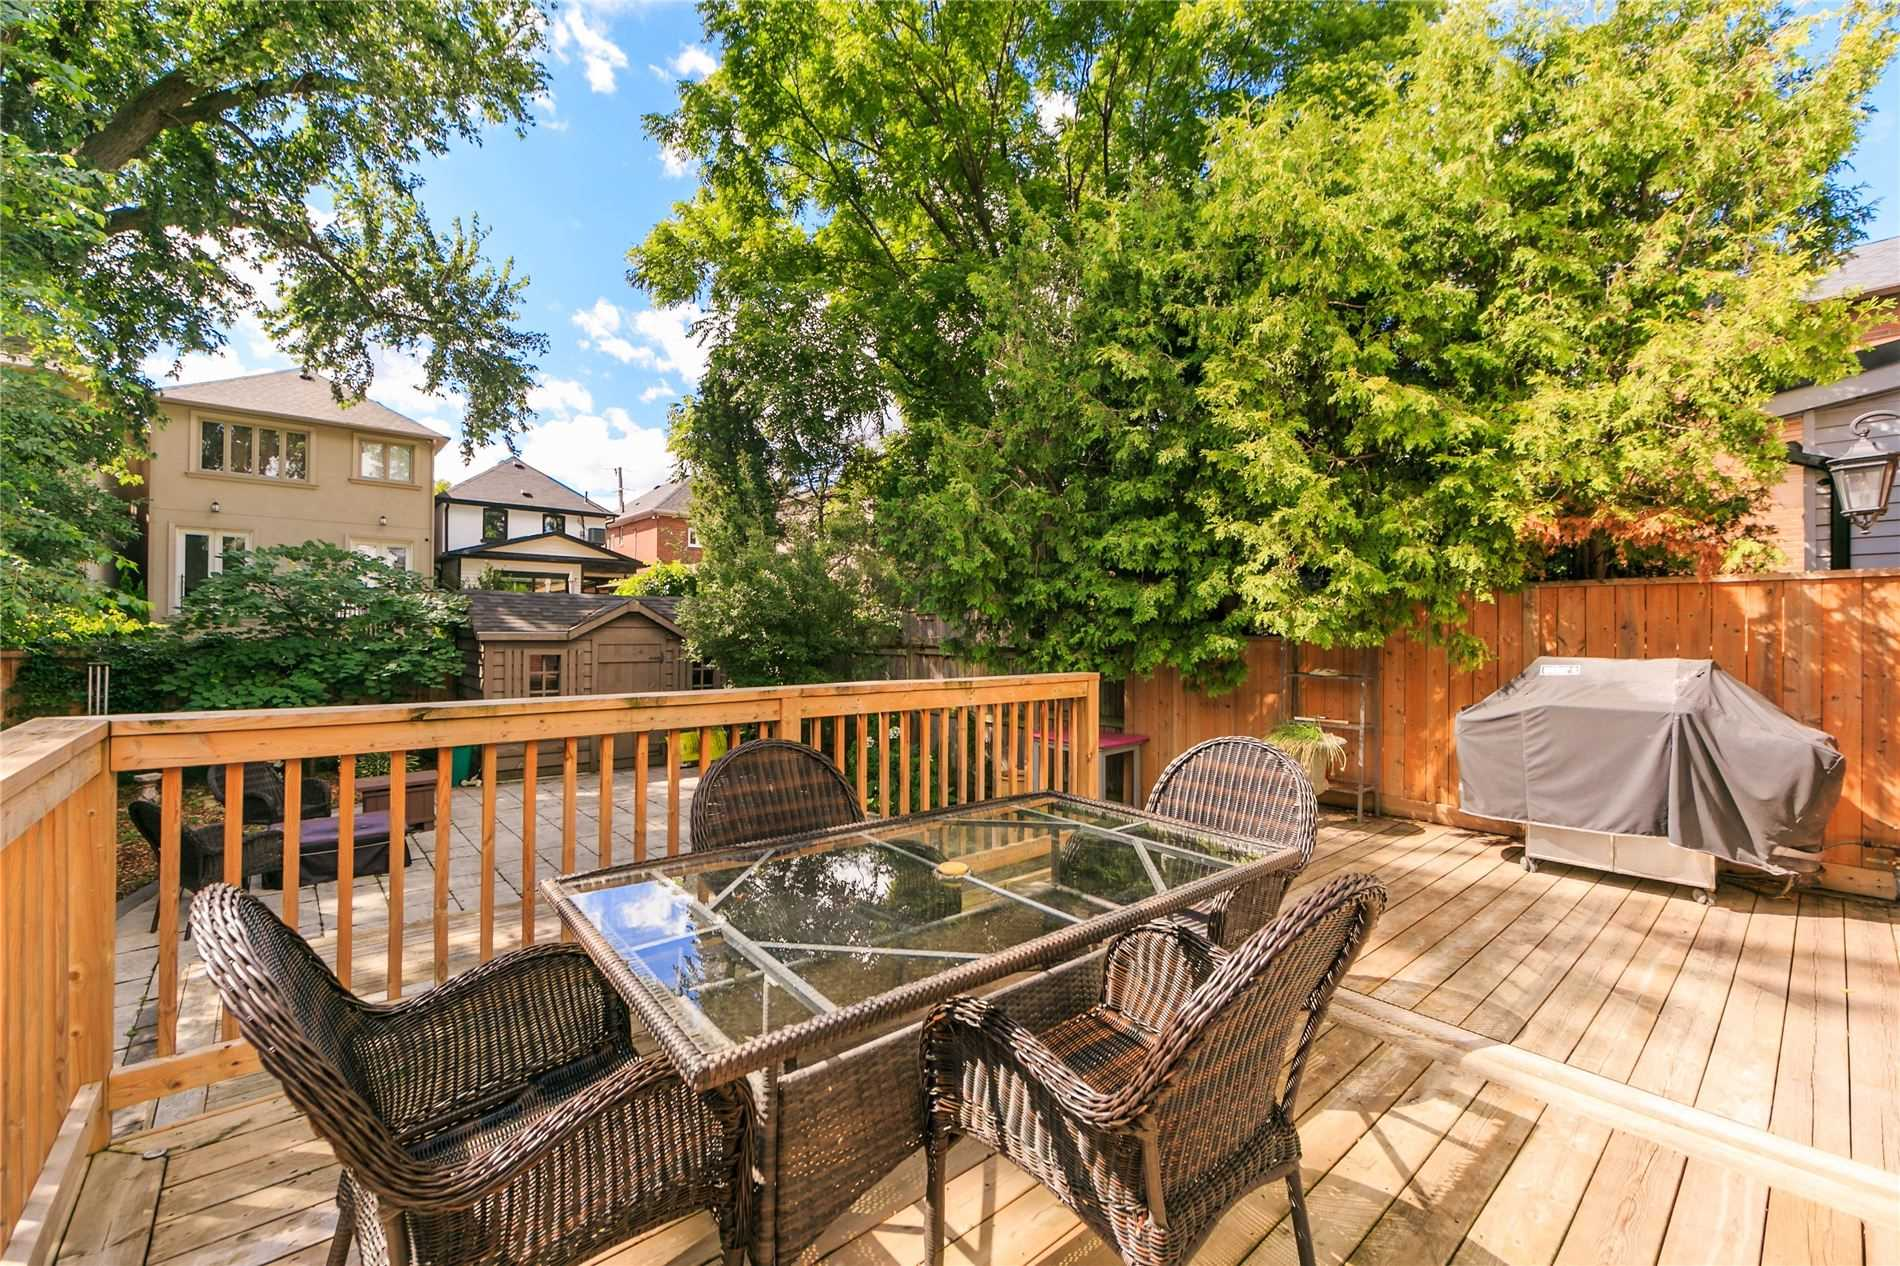 387 Old Orchard Grve, Toronto, Ontario M5M2G1, 3 Bedrooms Bedrooms, 7 Rooms Rooms,4 BathroomsBathrooms,Detached,For Sale,Old Orchard,C4858945